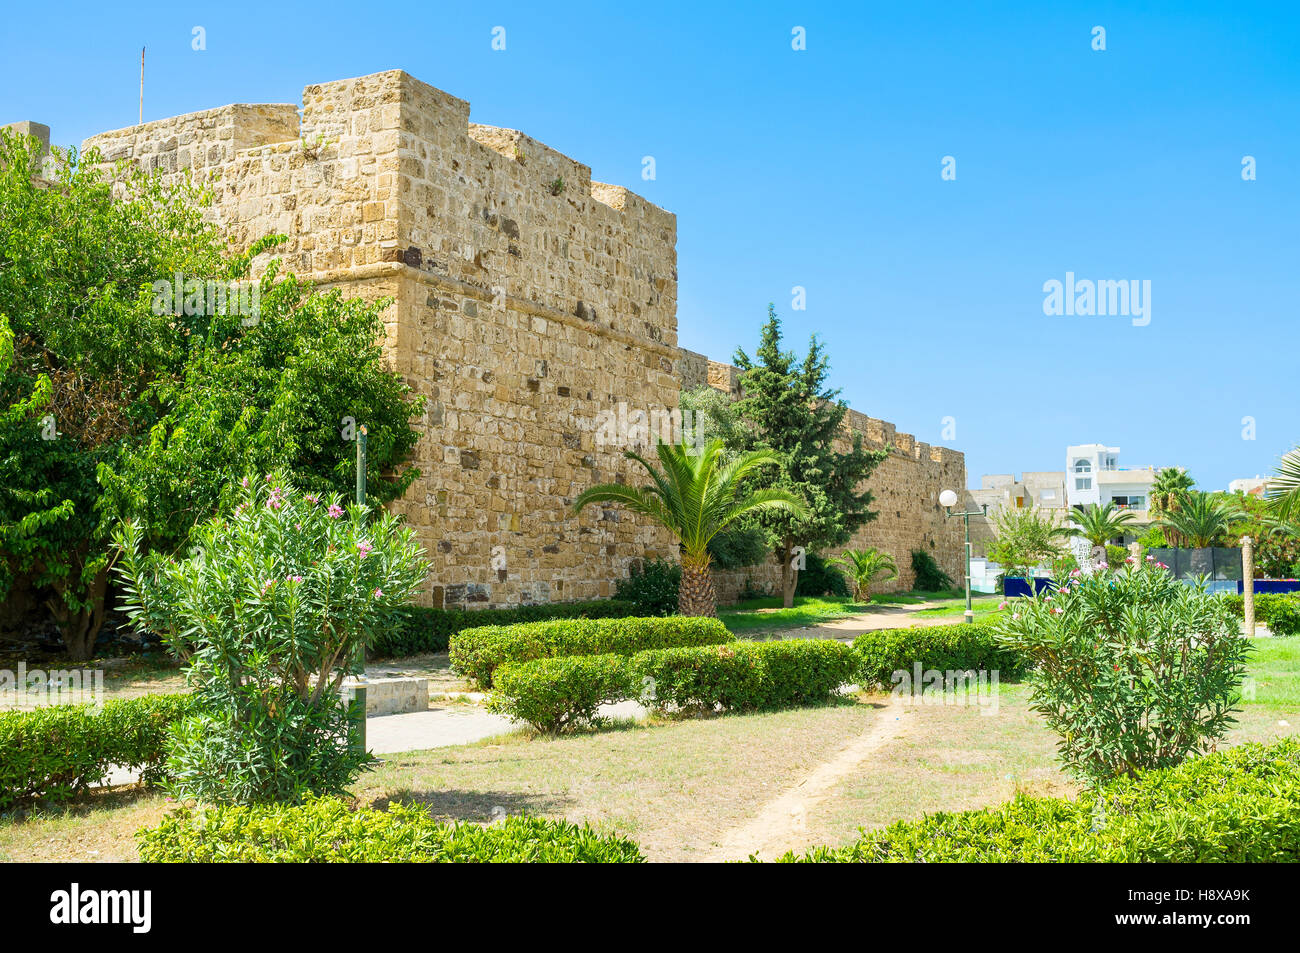 The lovely green garden next to the rampart of Kasbah, Bizerte, Tunisia. - Stock Image